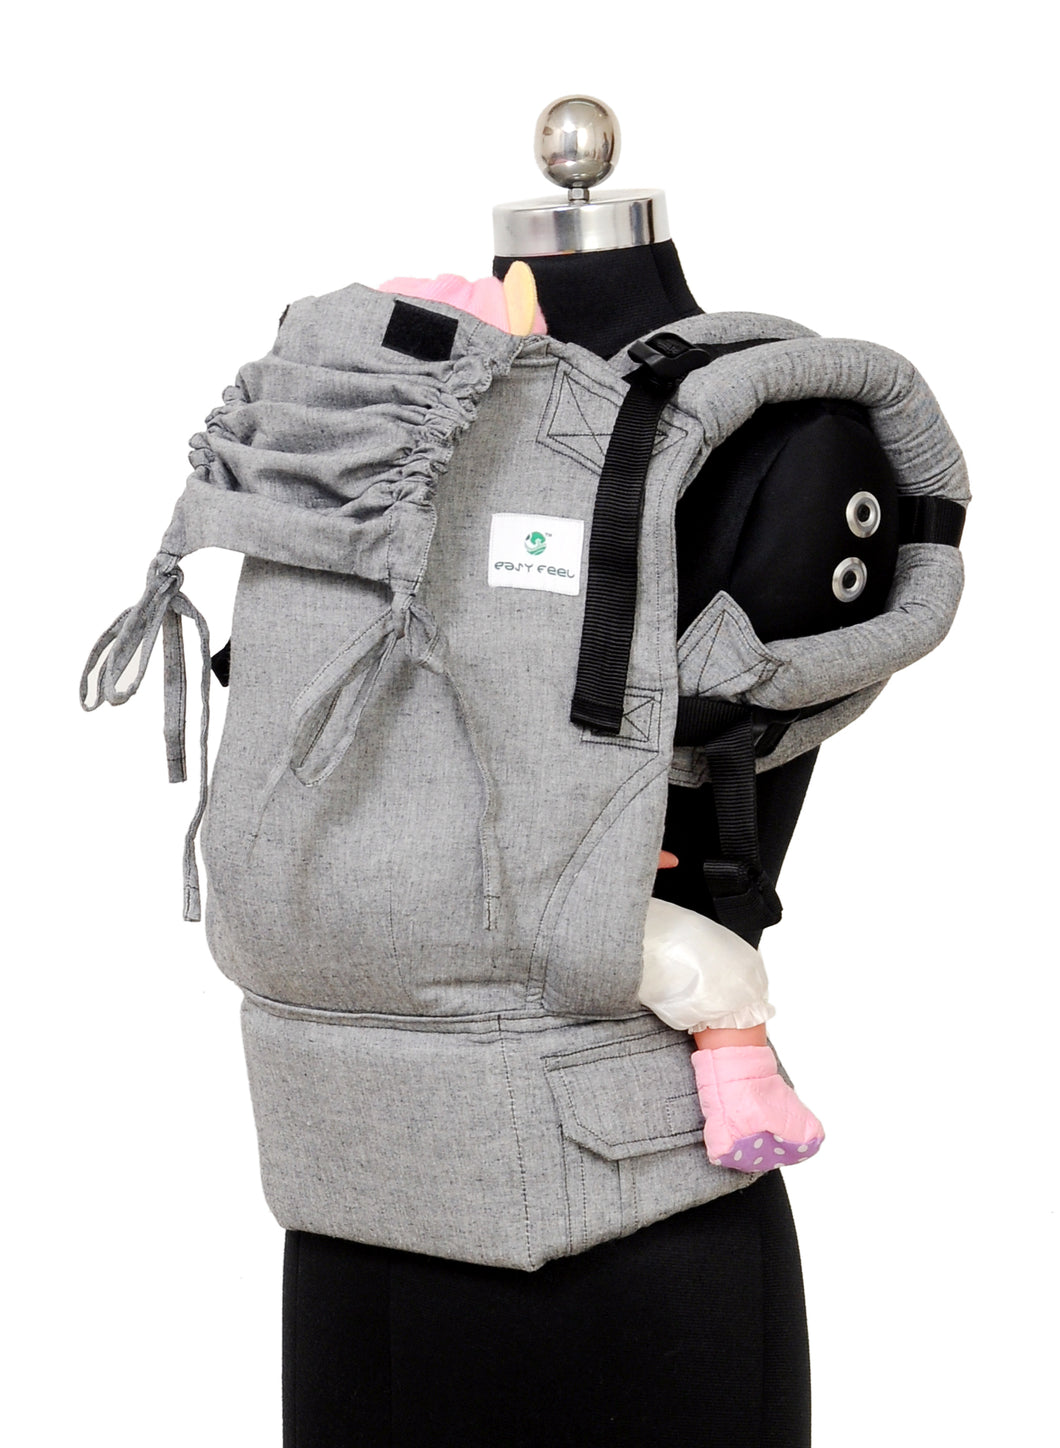 Toddler Soft Structured Carrier - Graphite